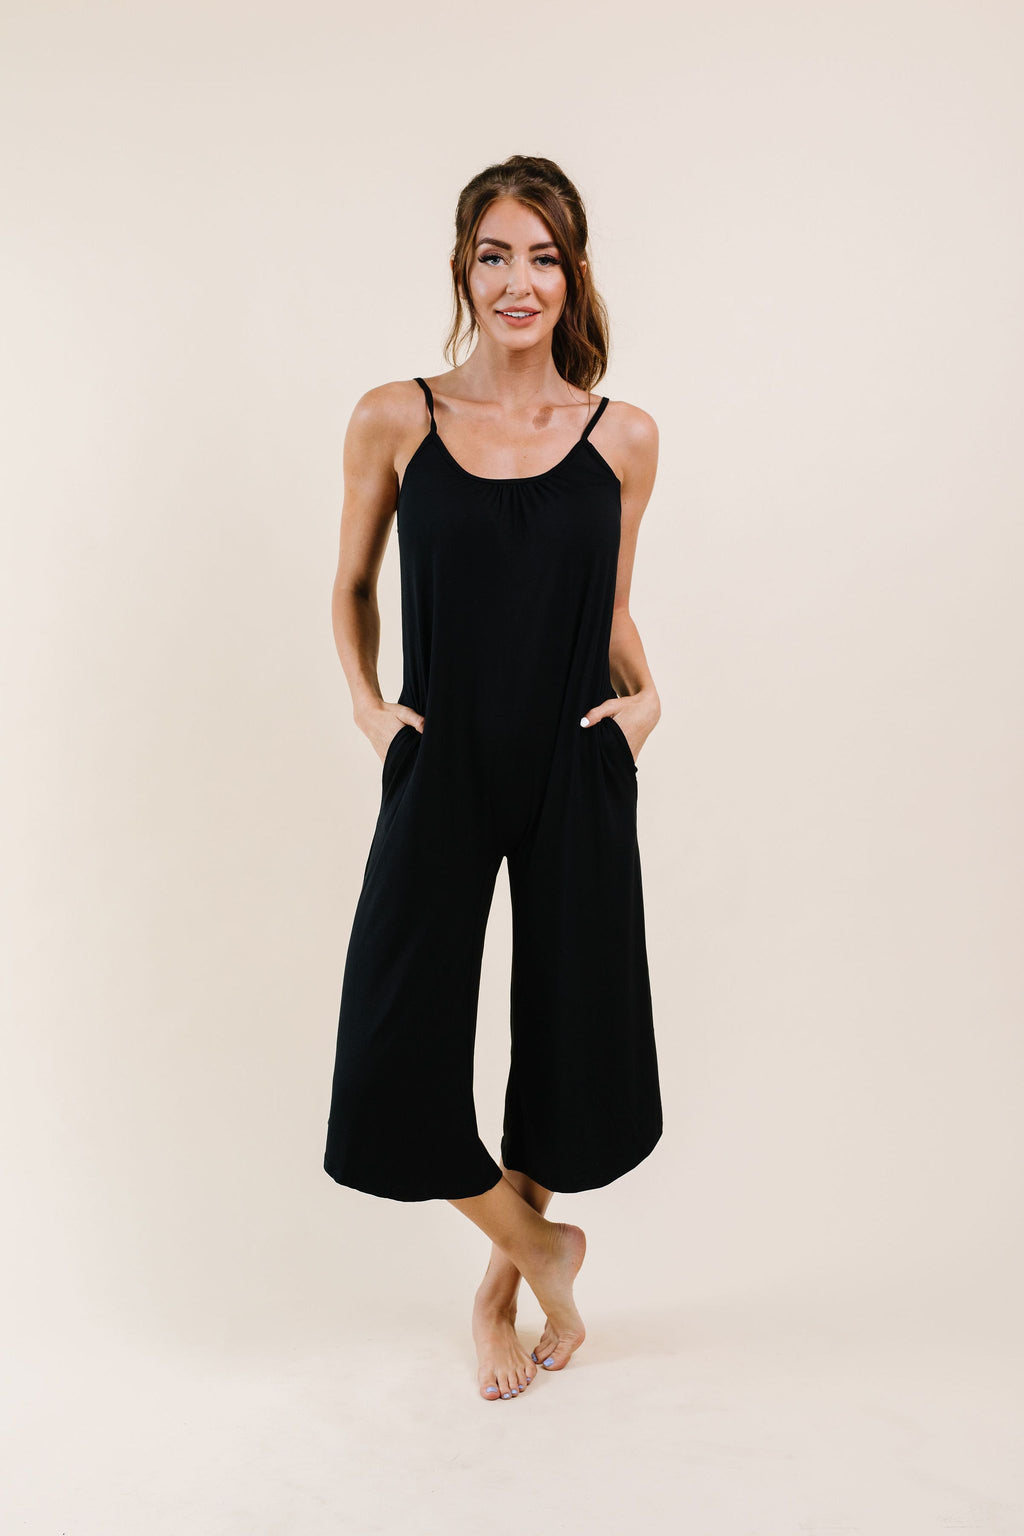 Good Better Best Cropped Tank Jumpsuit - On Hand-1XL, 2XL, 3XL, 8-20-2020, BFCM2020, Bottoms, Group A, Group B, Group C, Group D, Group T, Large, Made in the USA, Medium, Plus, Small, XL, XS-Womens Artisan USA American Made Clothing Accessories